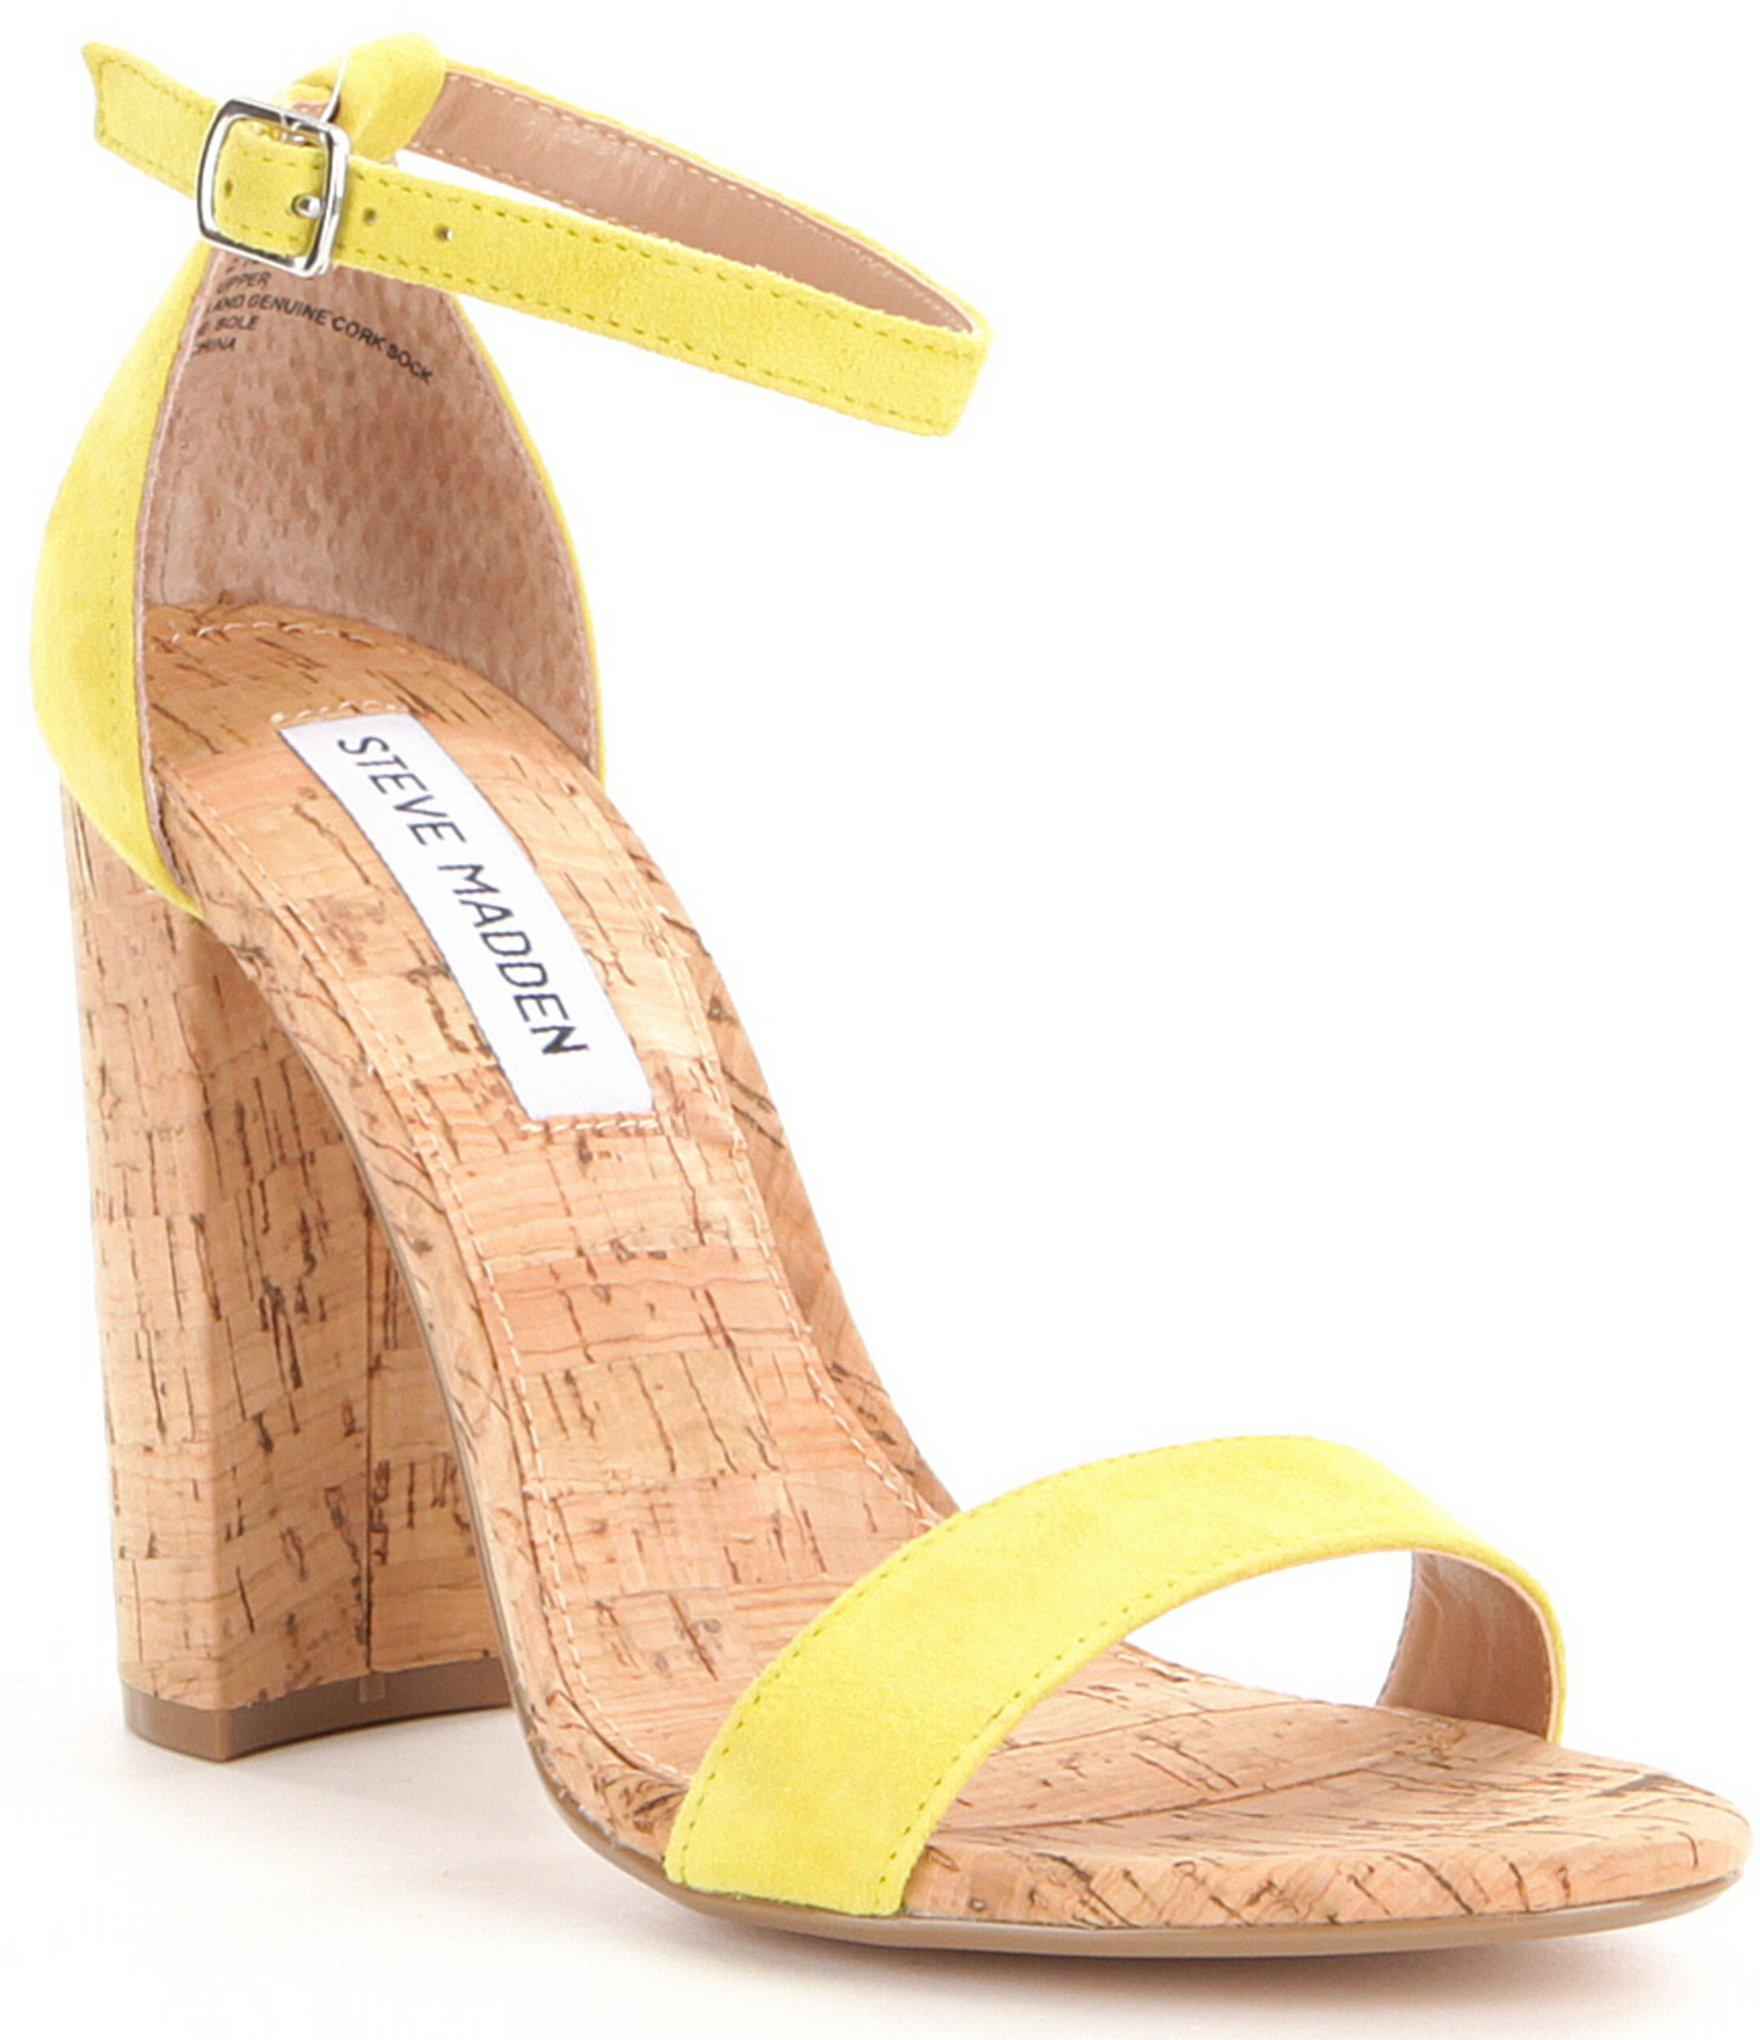 Steve madden Carson Ankle Strap Cork Block Heel Sandals in Yellow